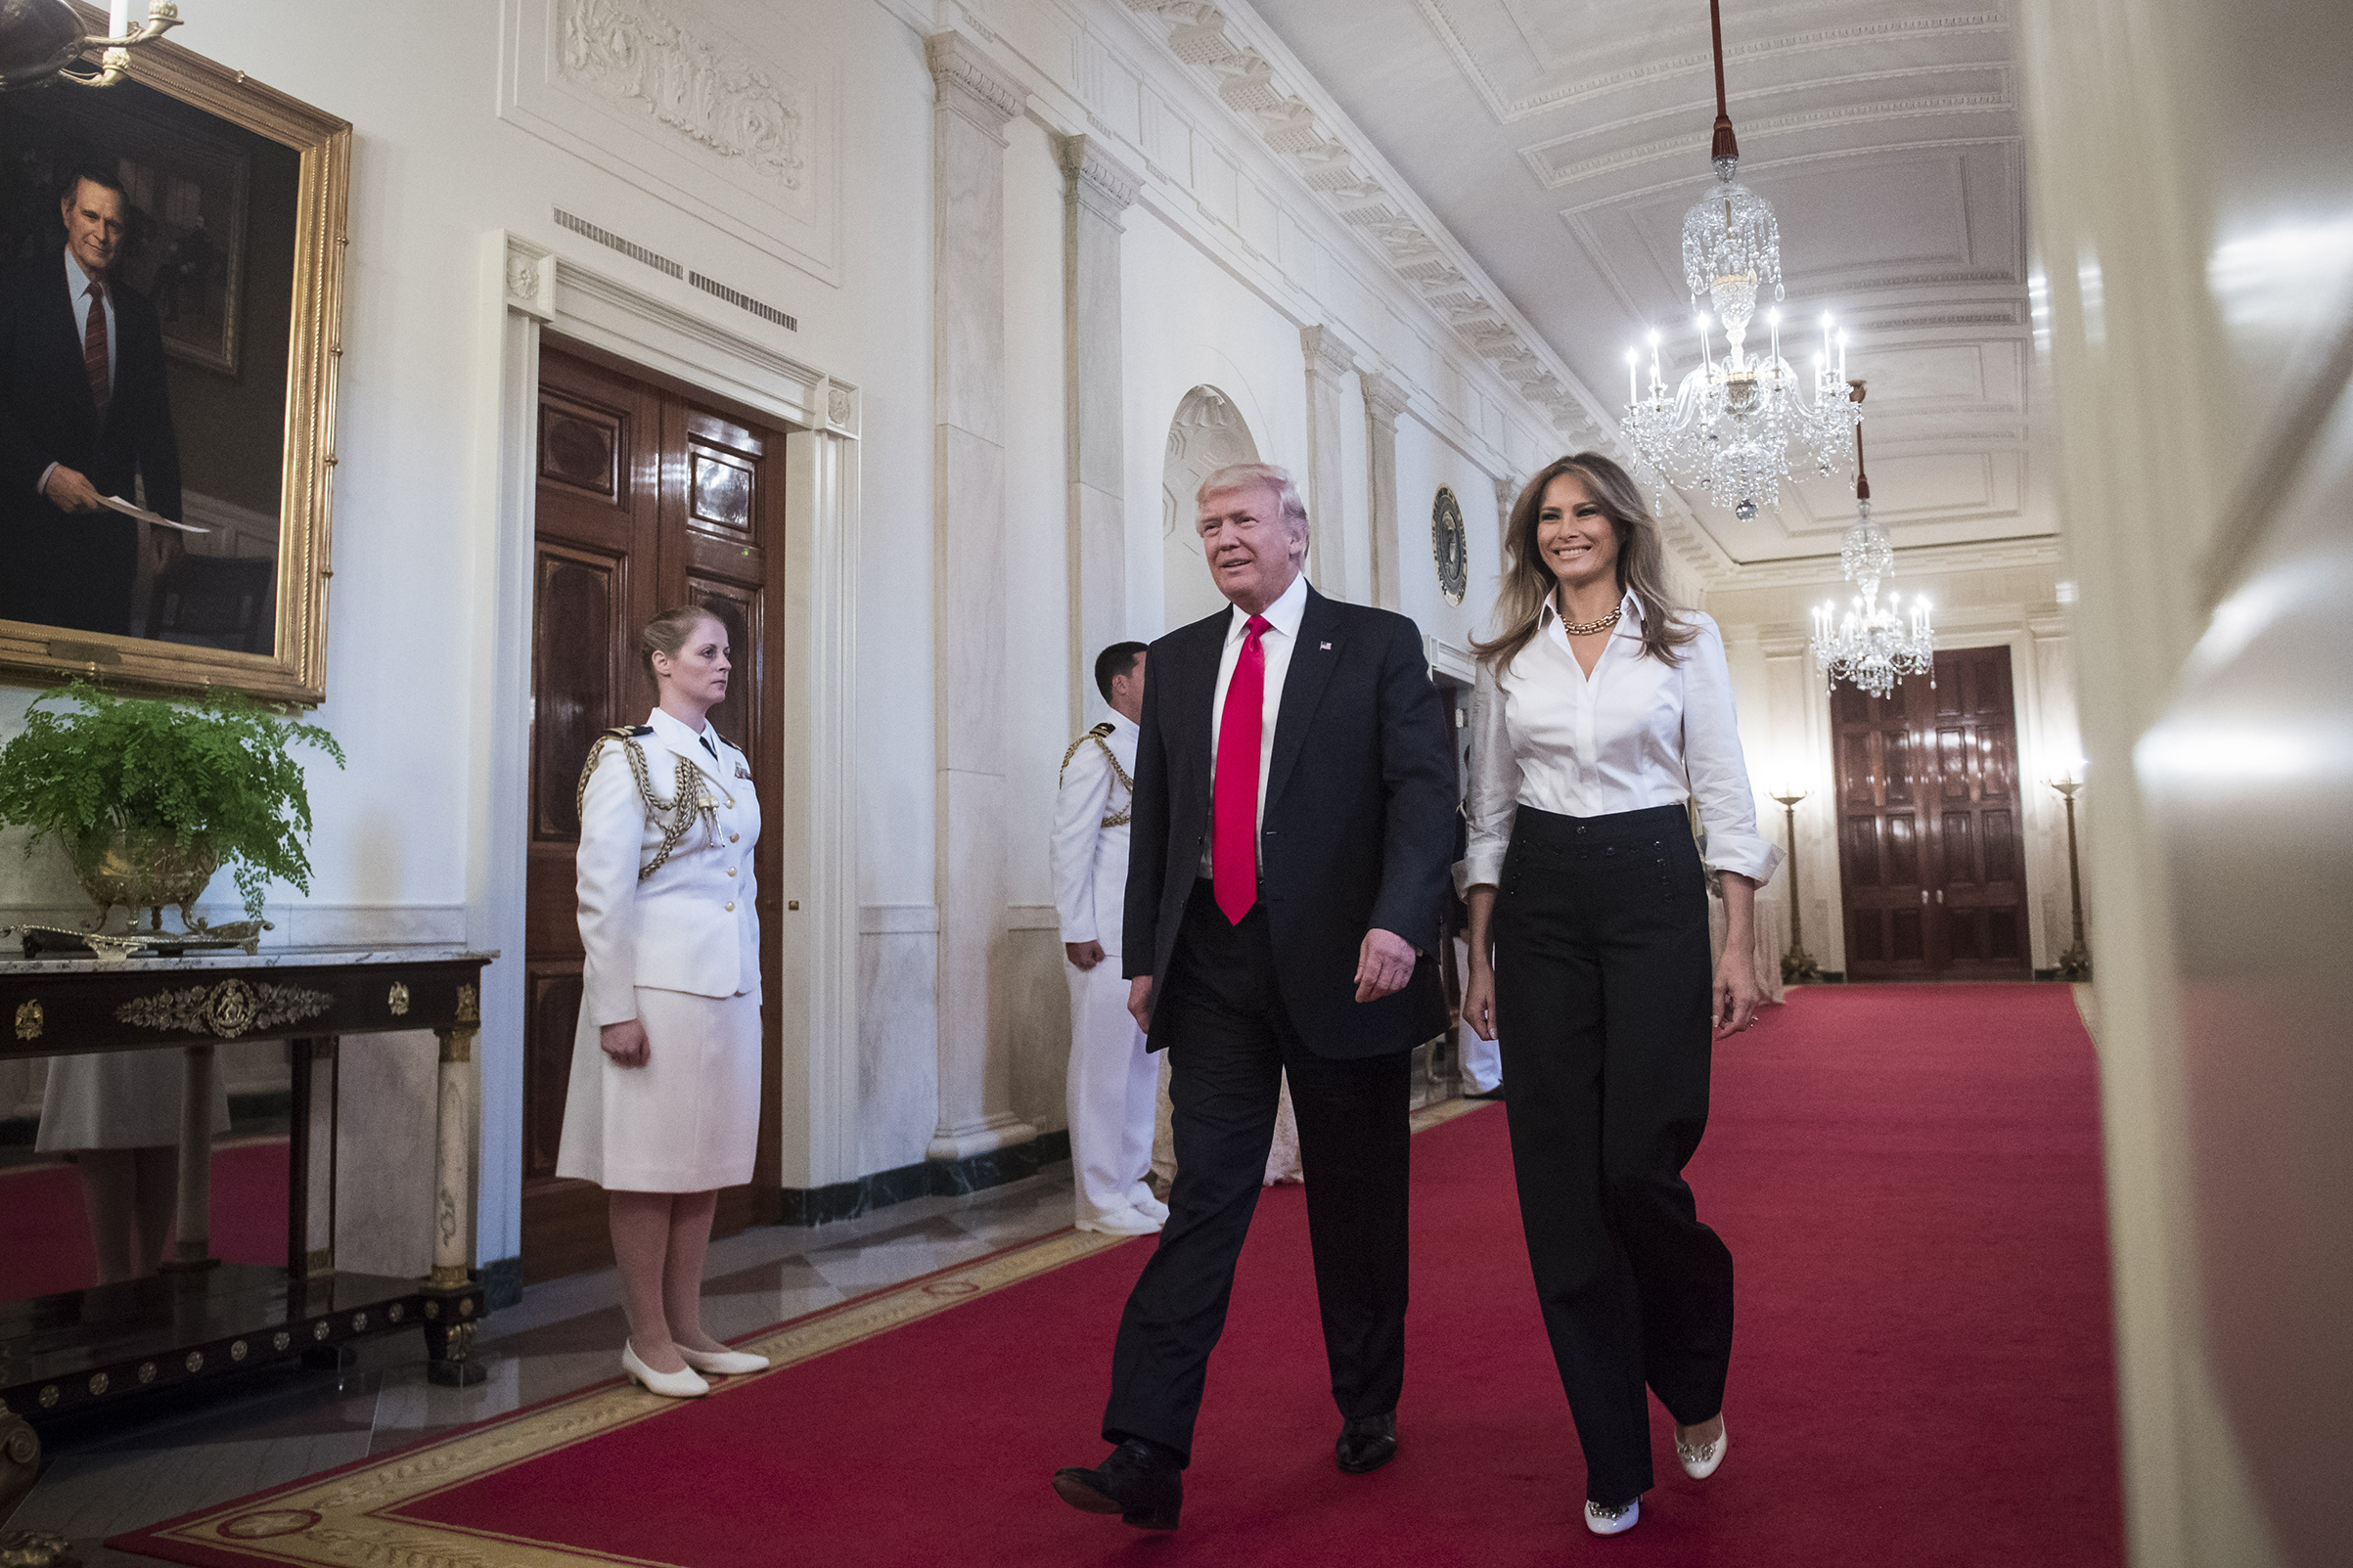 President Donald Trump and first lady Melania Trump wearing white Dolce & Gabbana button-down shirt and Ralph Lauren Collection pants,  arrive to speak to military mothers during their visit to the White House for a Mother's Day celebration in the East Room of the White House in Washington, D.C. on May 12, 2017.